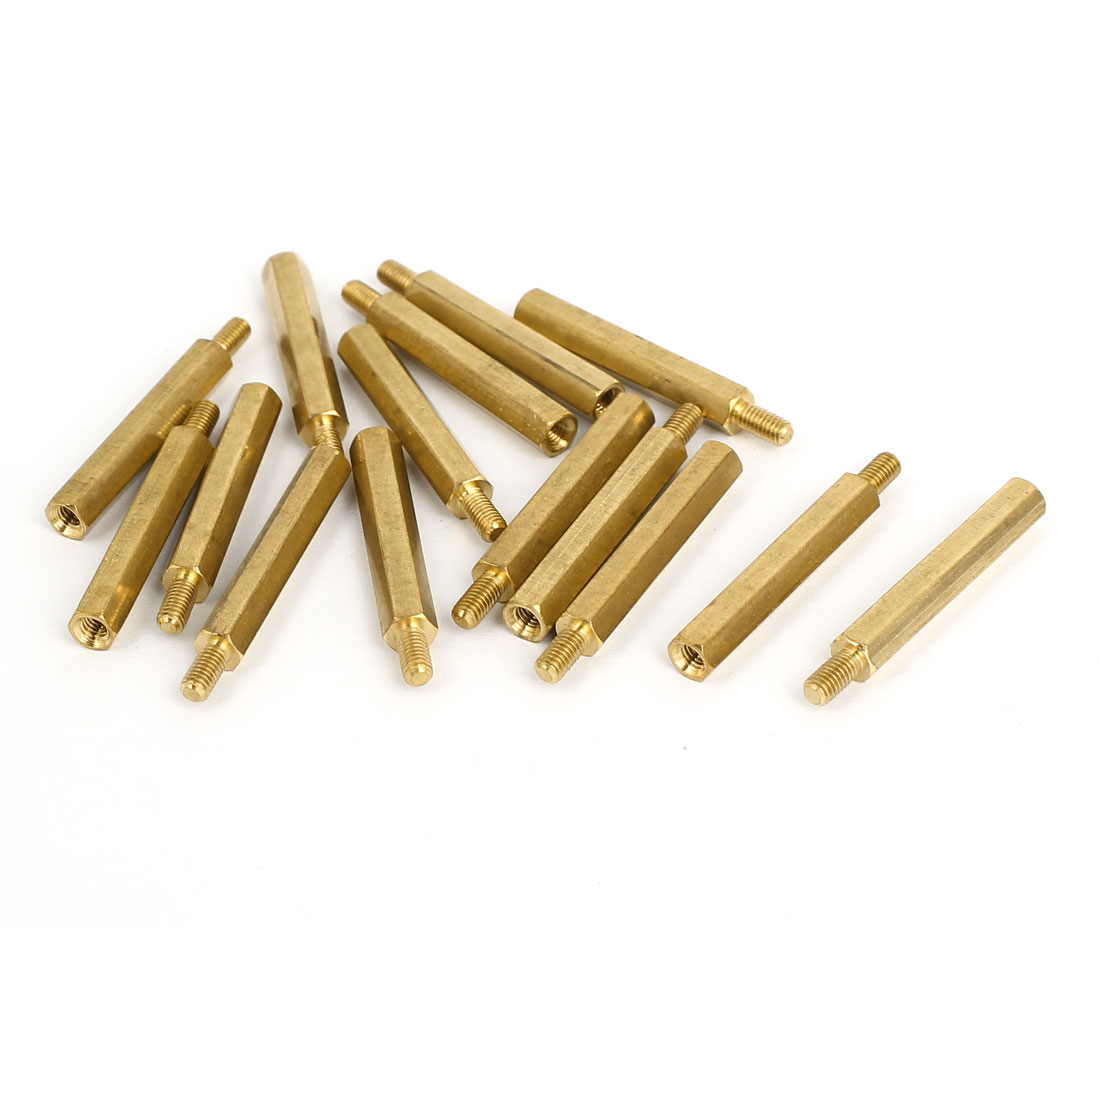 M3 Male/Female Thread Brass Hexagonal PCB Spacer Standoff Support 28mm+6mm 15pcs